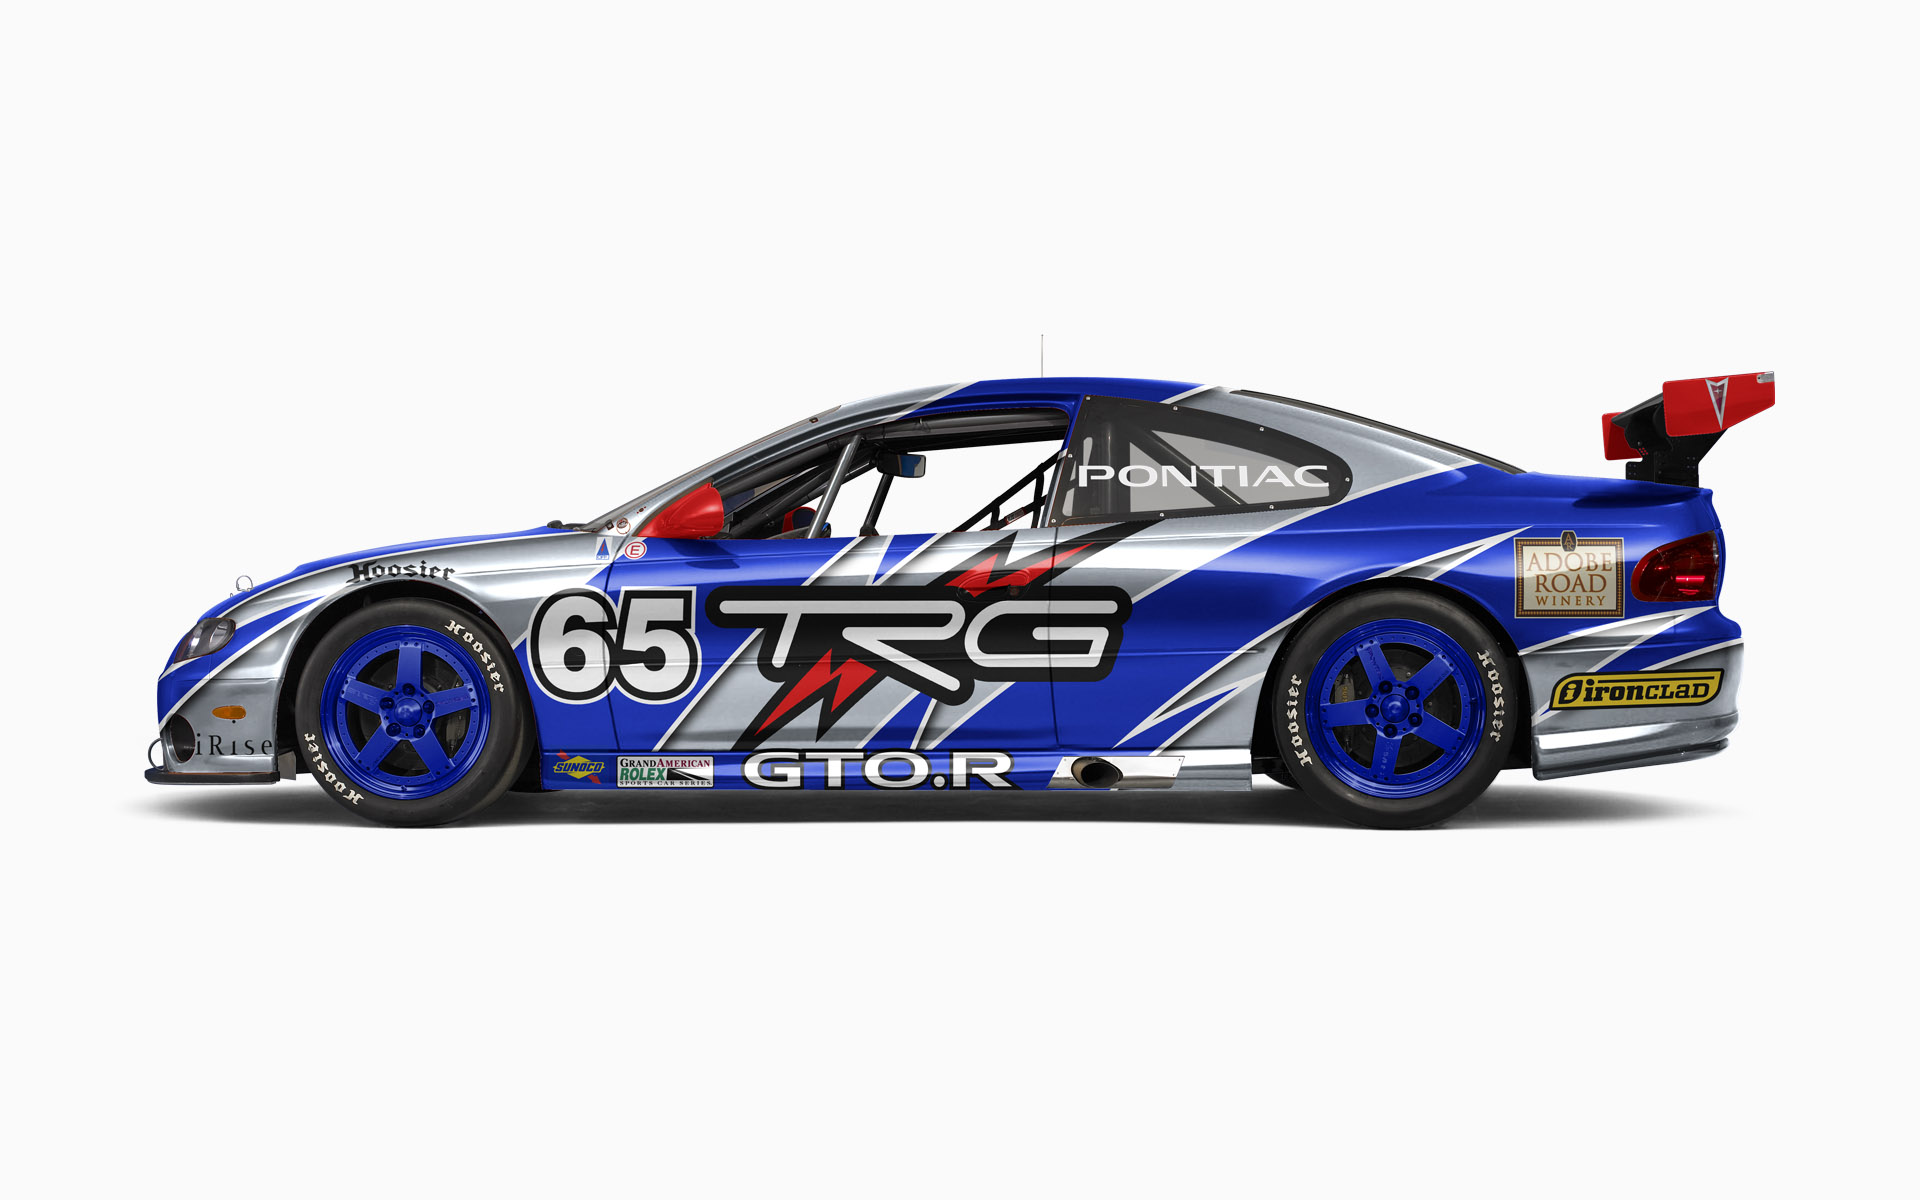 2005 GM Racing Pontiac GTO.R Livery Visualization